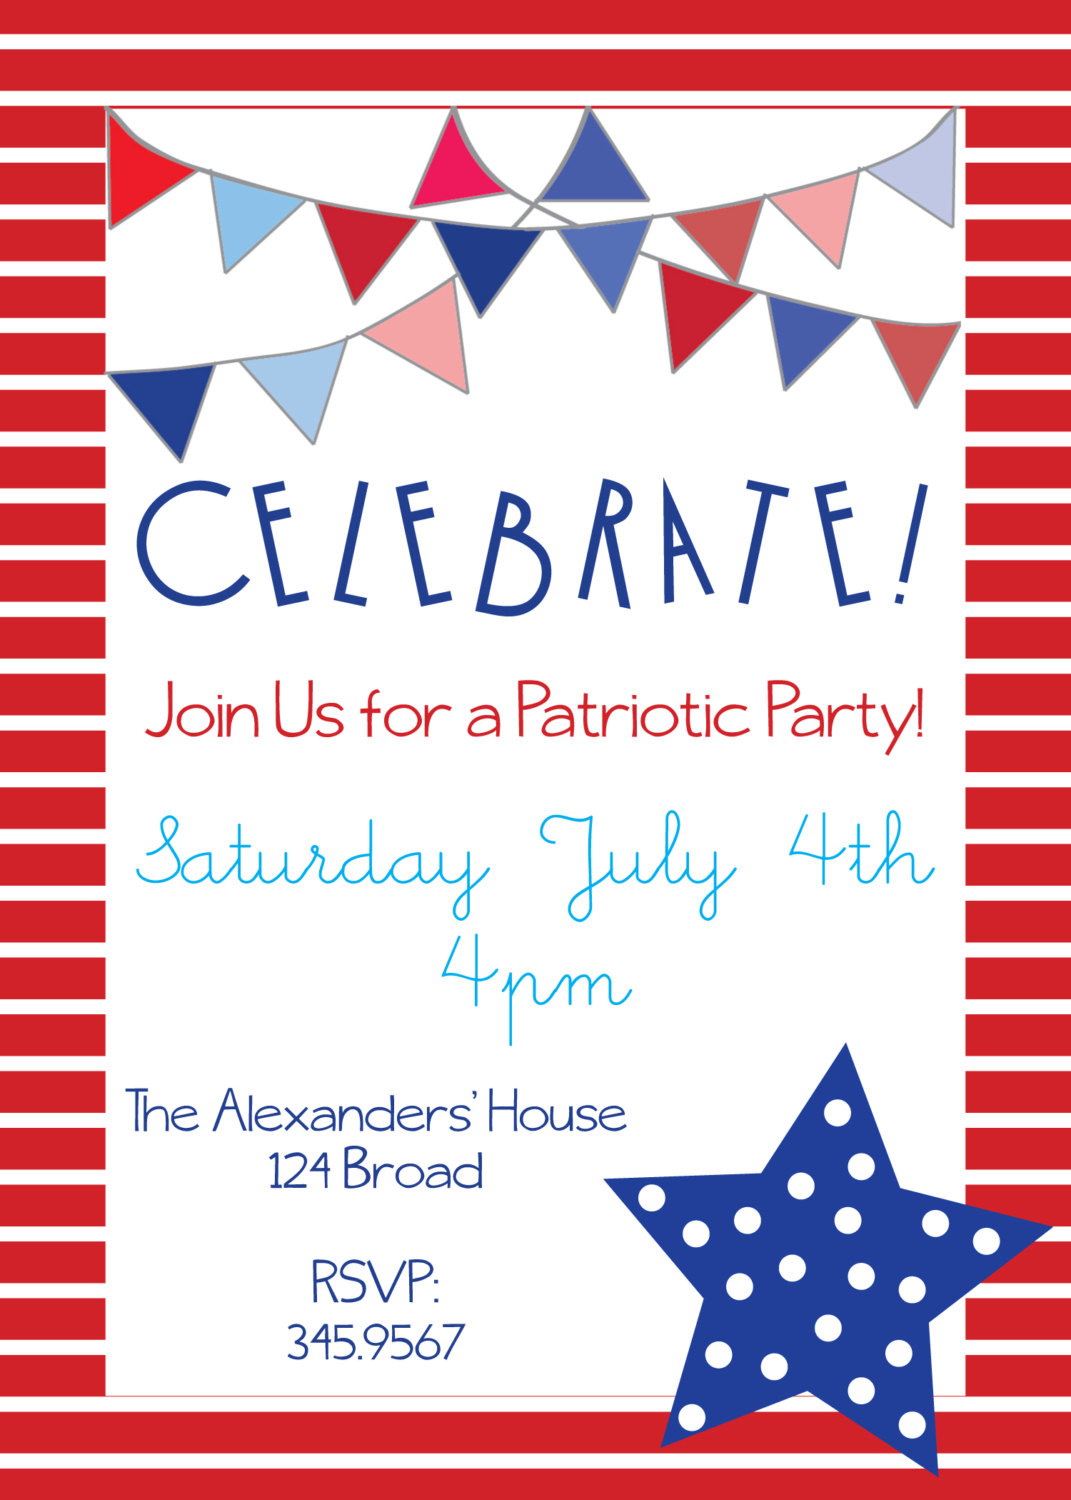 Patriotic Party Invitations For Memorial Day 4th Of By Nikkihodum